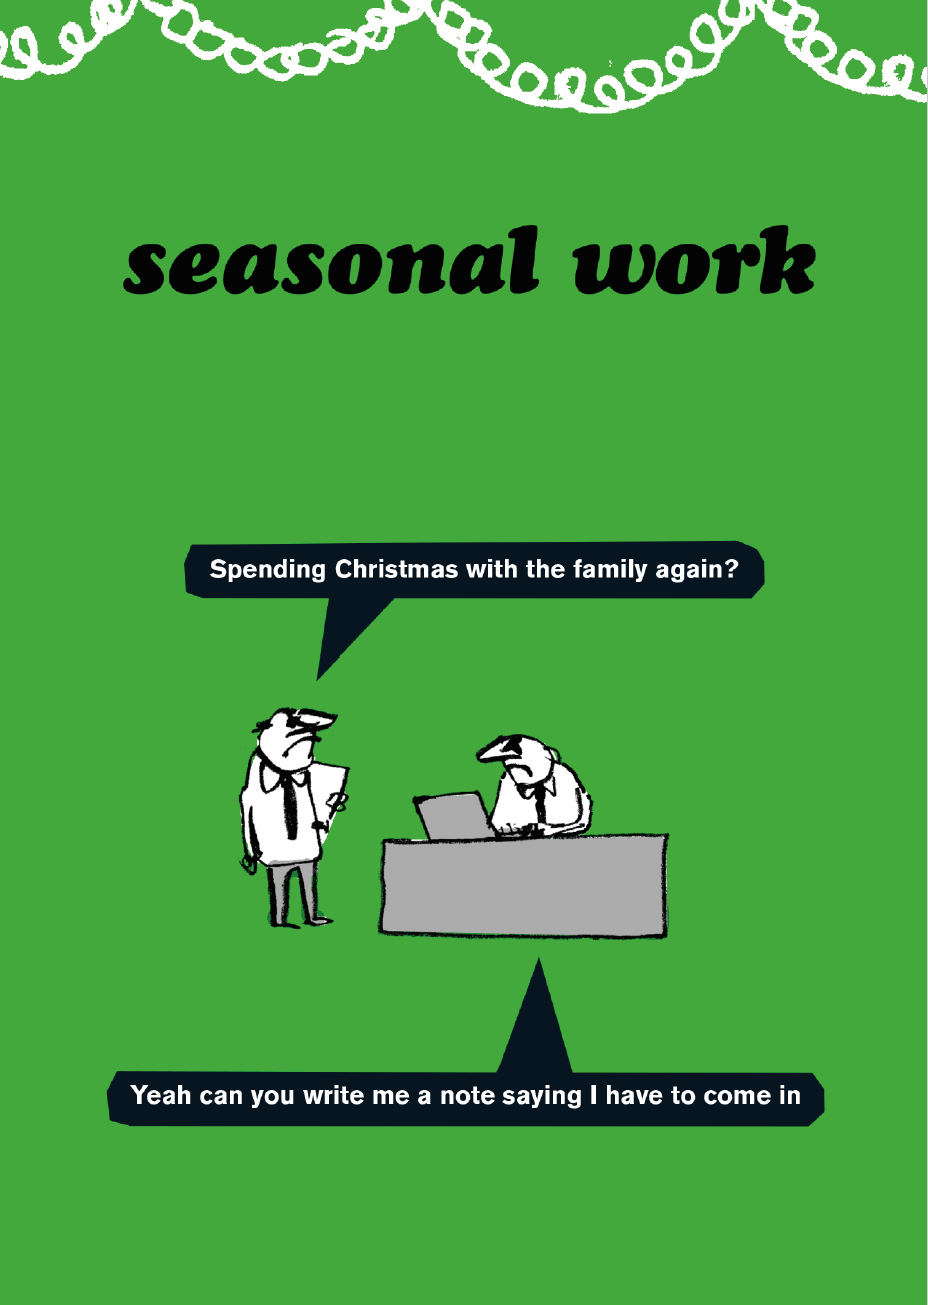 xmt56 seasonal work.png